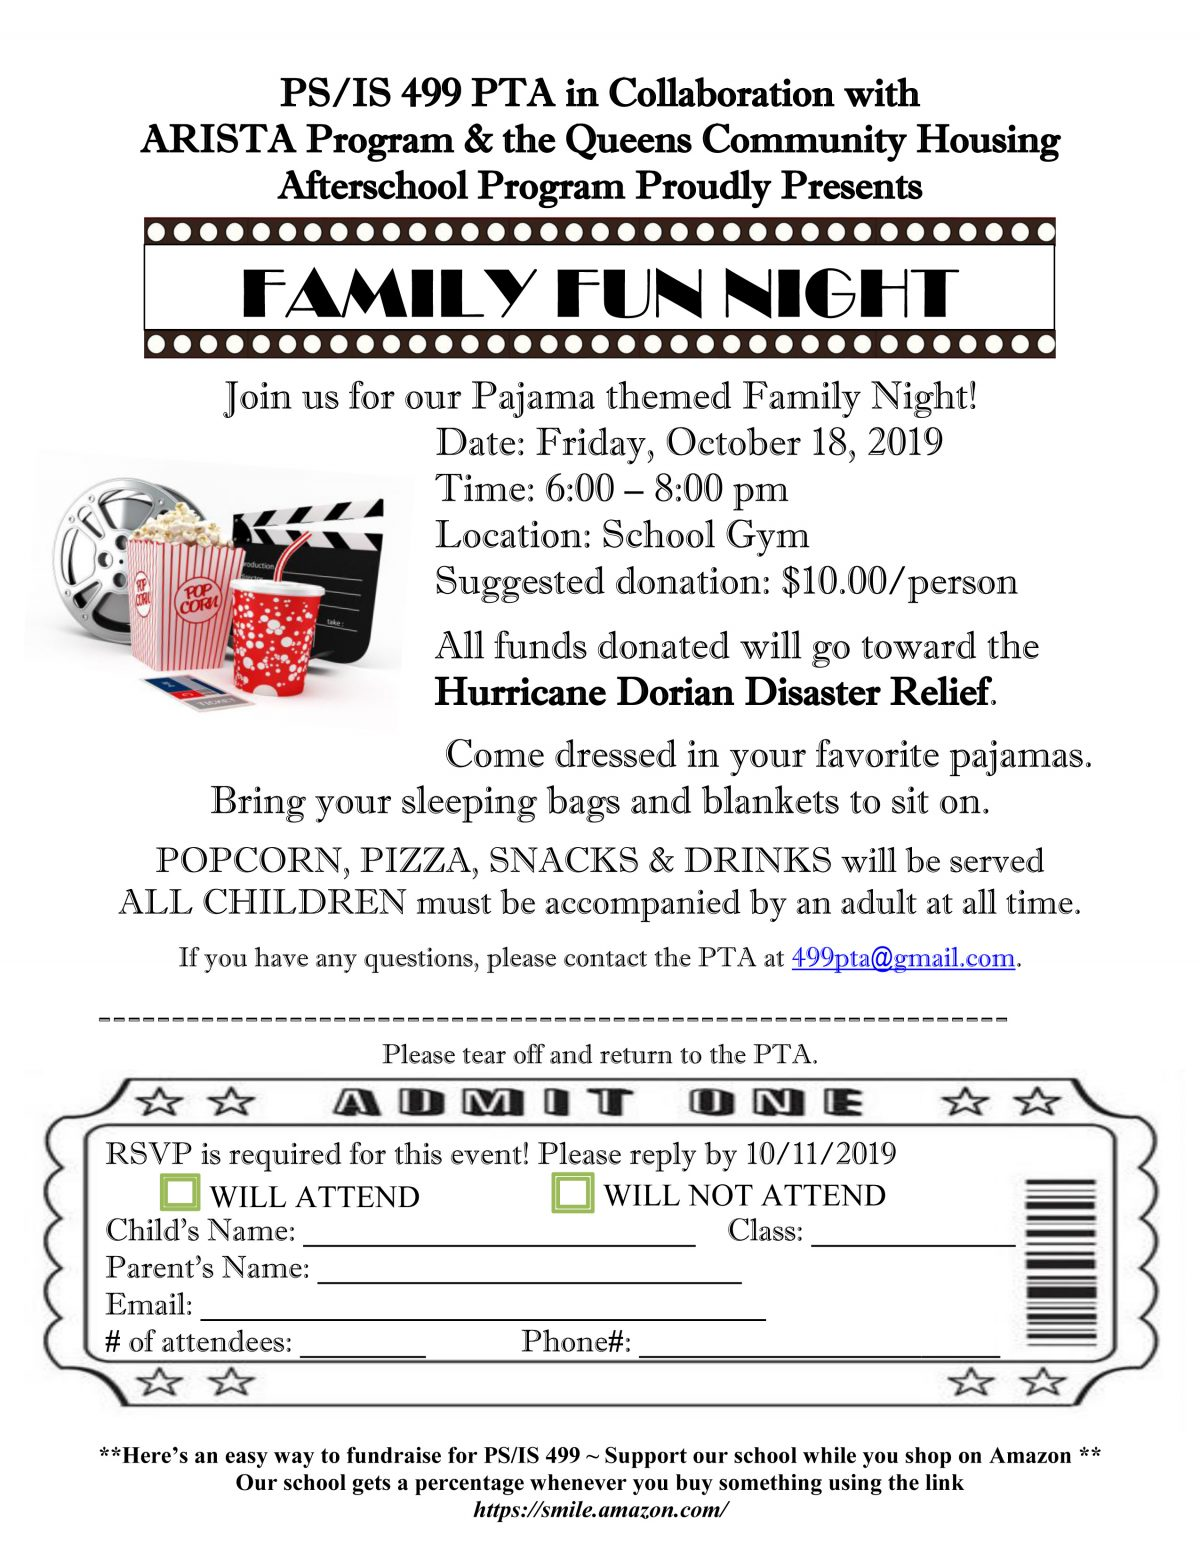 Join us for Family Fun Night!